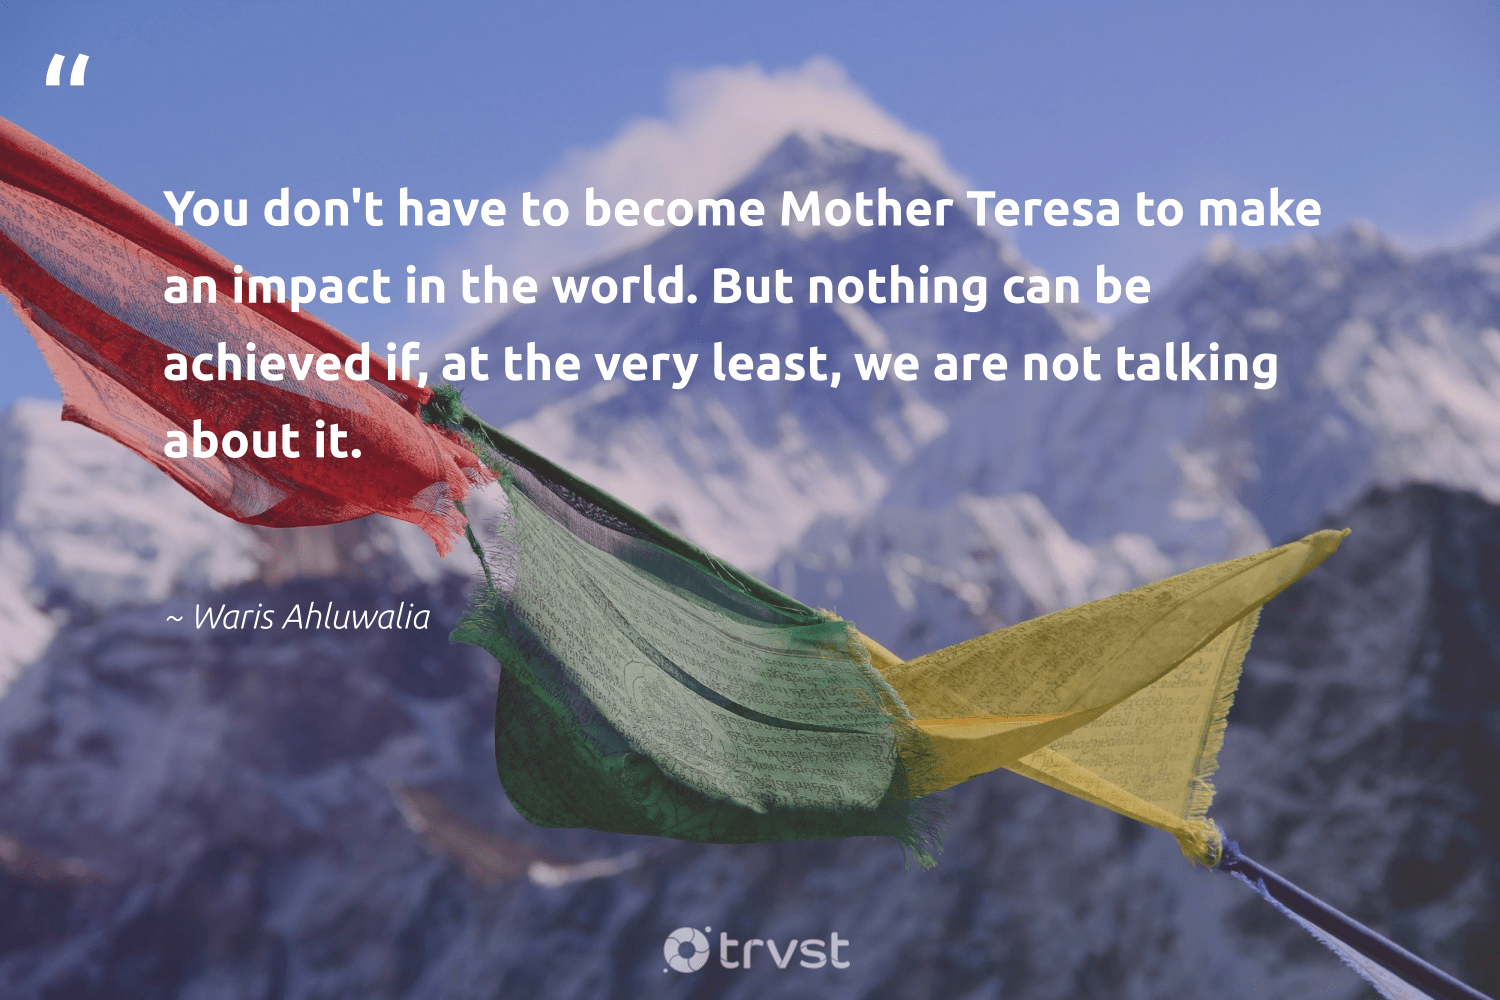 """You don't have to become Mother Teresa to make an impact in the world. But nothing can be achieved if, at the very least, we are not talking about it.""  - Waris Ahluwalia #trvst #quotes #impact #betterplanet #socialchange #dogood #dotherightthing #giveback #planetearthfirst #ethicalbusiness #collectiveaction #weareallone"